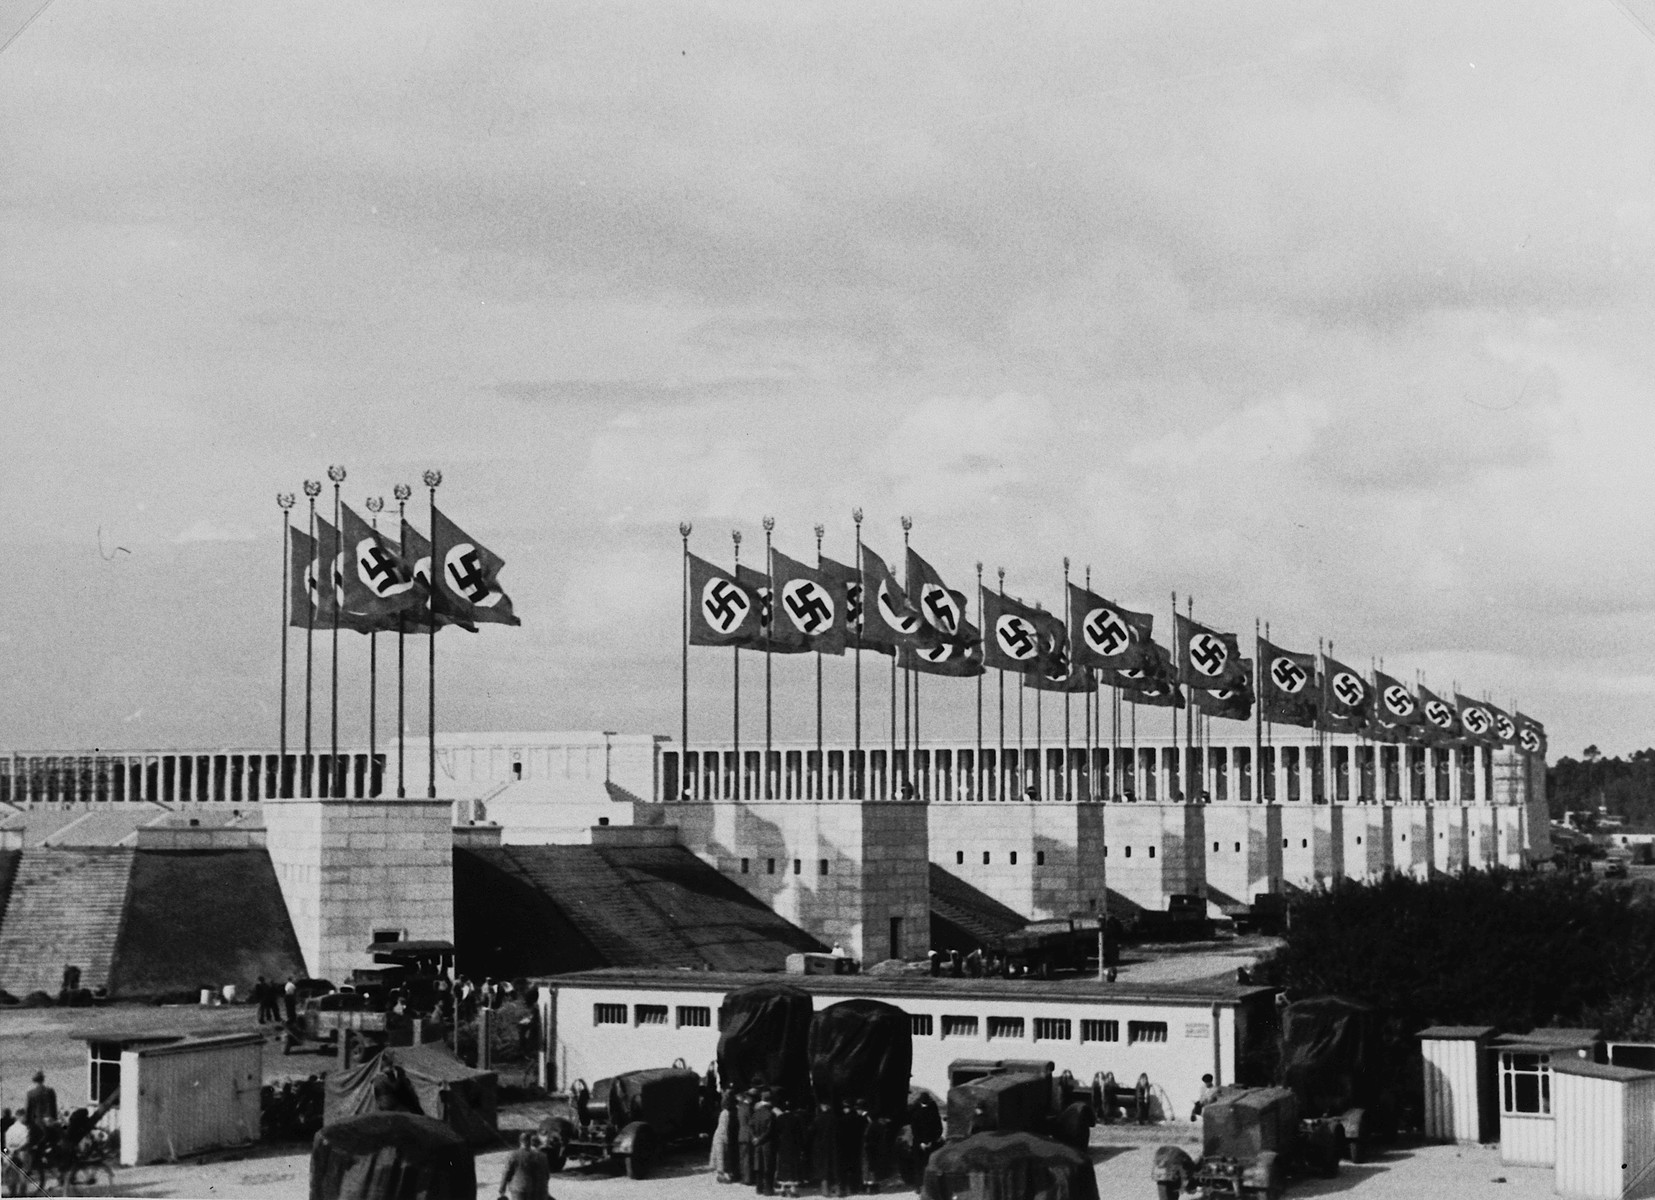 Nazi flags wave above the stadium for the Nuremberg rally.  This photograph was taken by a German Jewish woman, Lilli Rahn, who later emigrated.